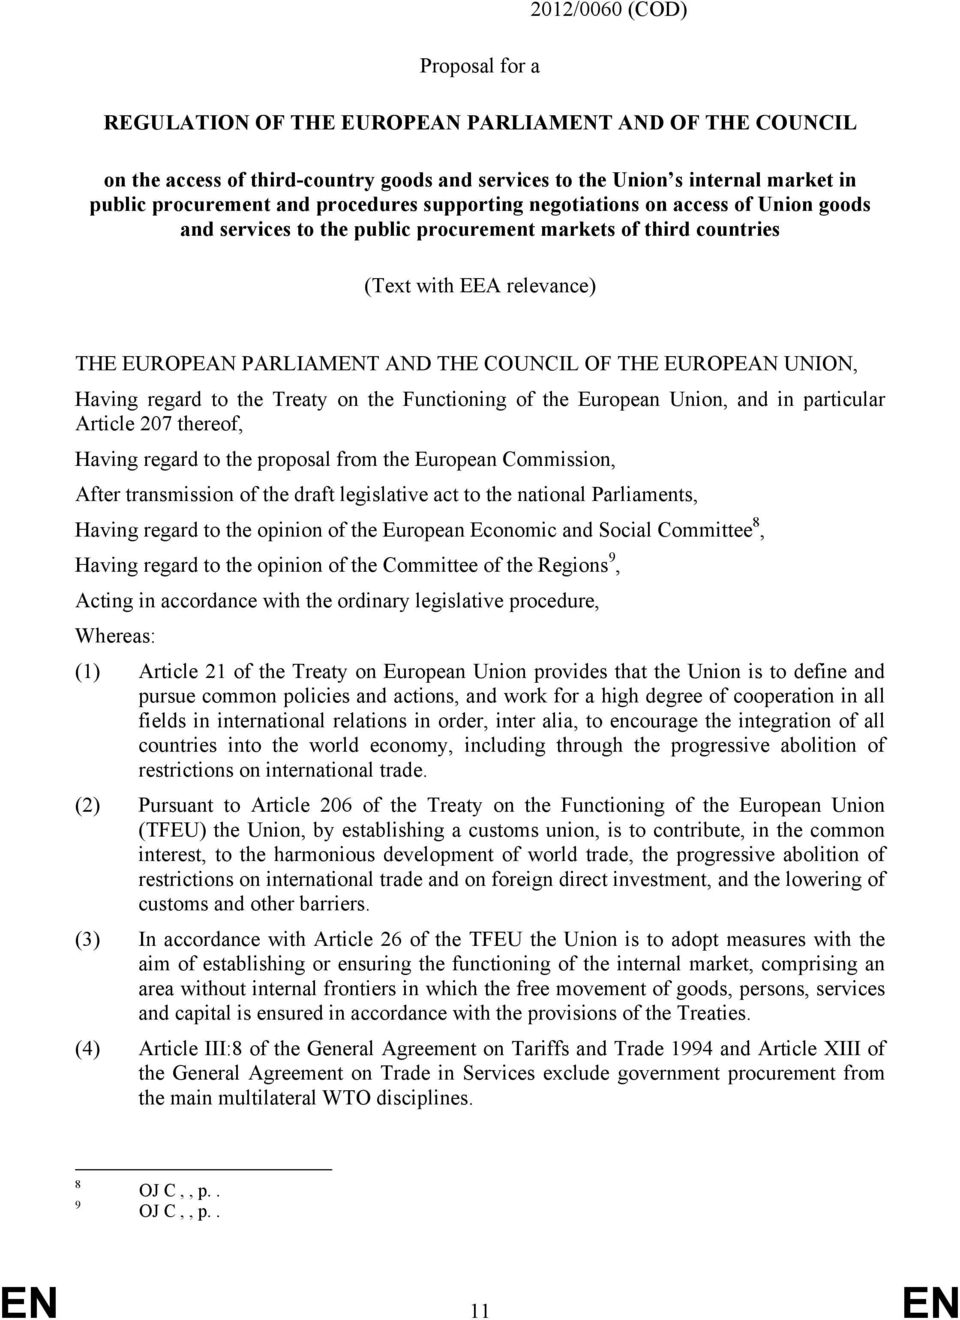 EUROPEAN UNION, Having regard to the Treaty on the Functioning of the European Union, and in particular Article 207 thereof, Having regard to the proposal from the European Commission, After